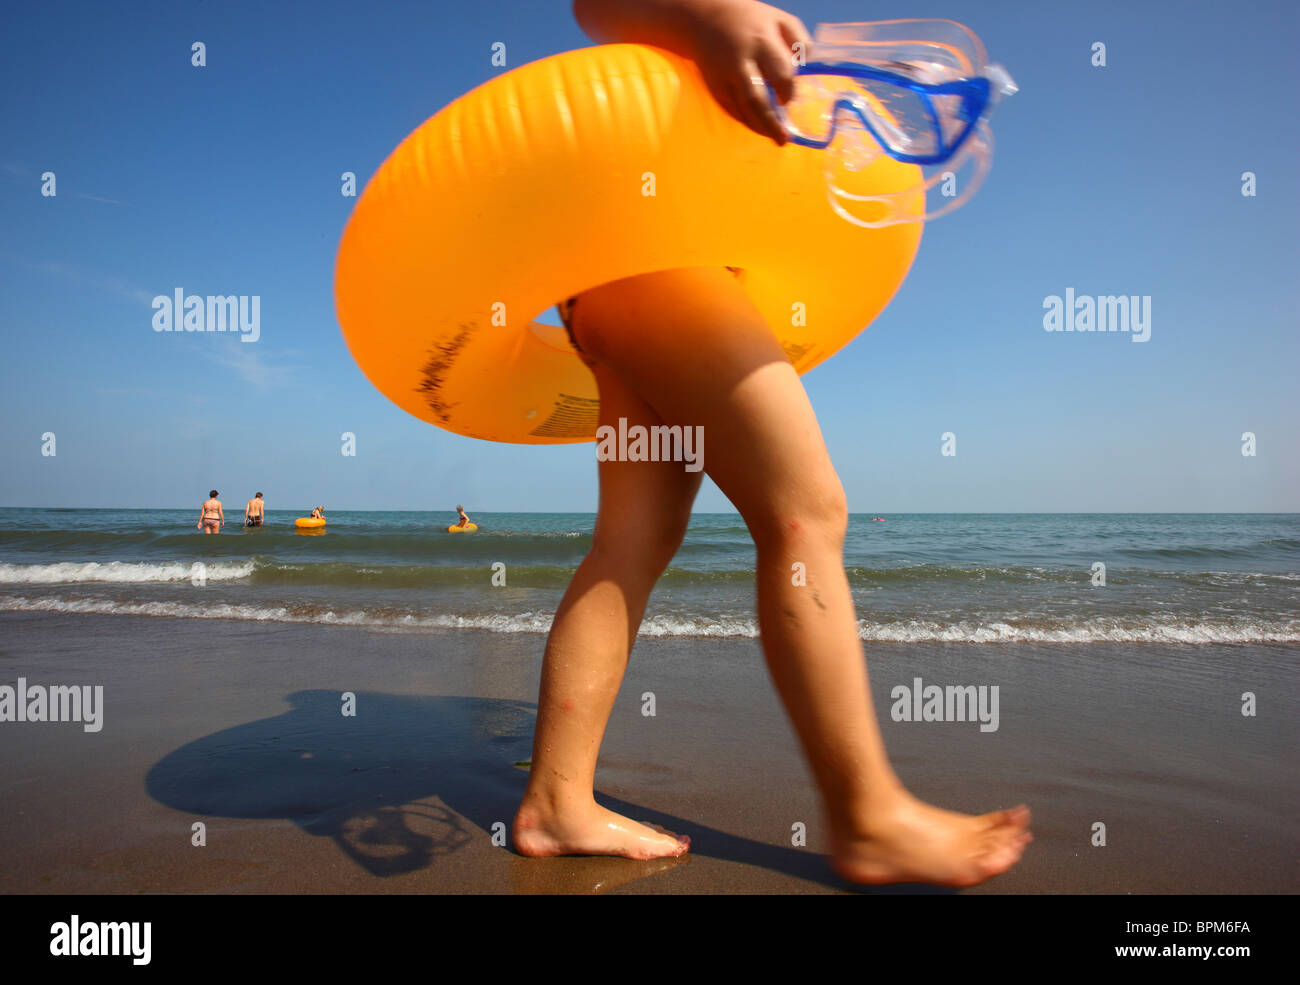 People on the beach at Jesolo, Adriatic sea, Italy. - Stock Image